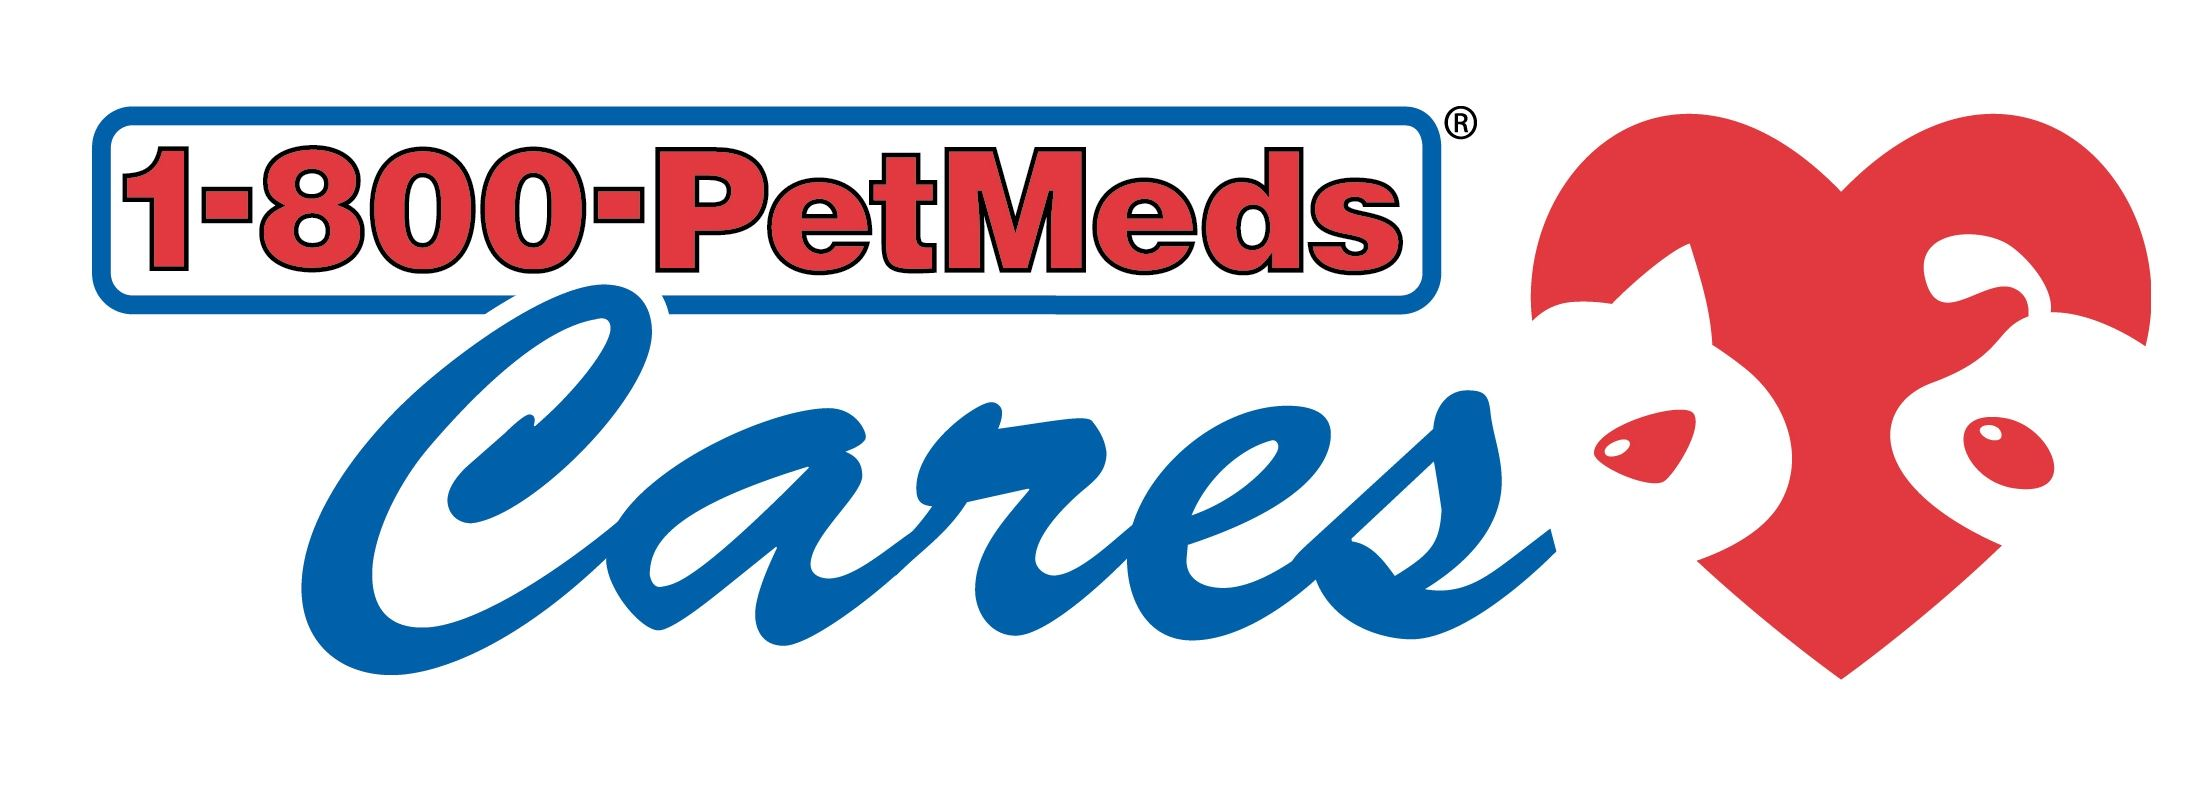 PetMeds-Cares-Logo-FINAL